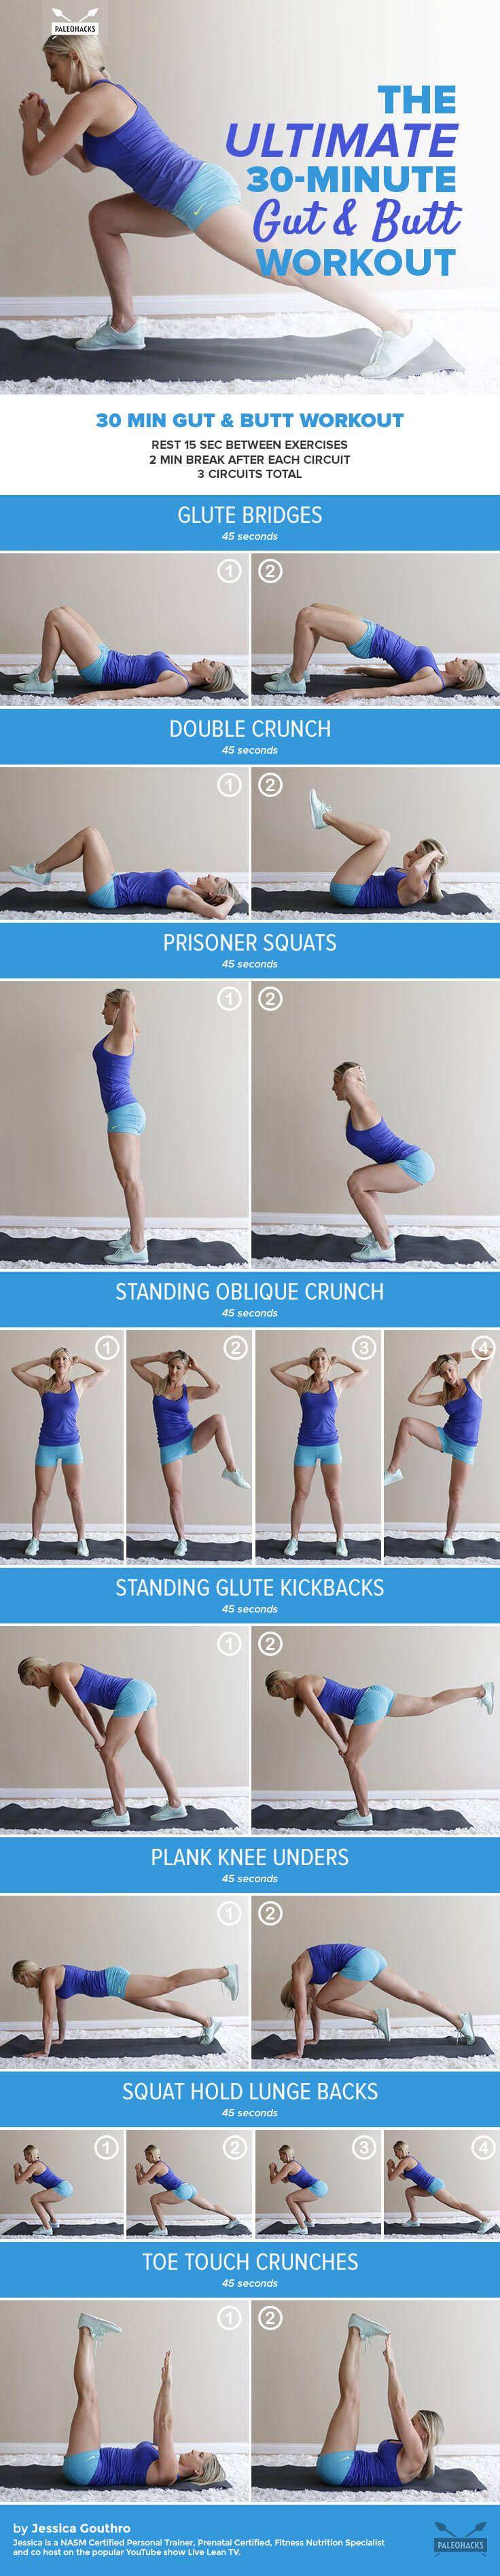 Tone and strengthen your core and rear with this 30-minute gut & butt workout – no equipment necessary! For the full workout, visit us here: http://paleo.co/gutbuttworkout